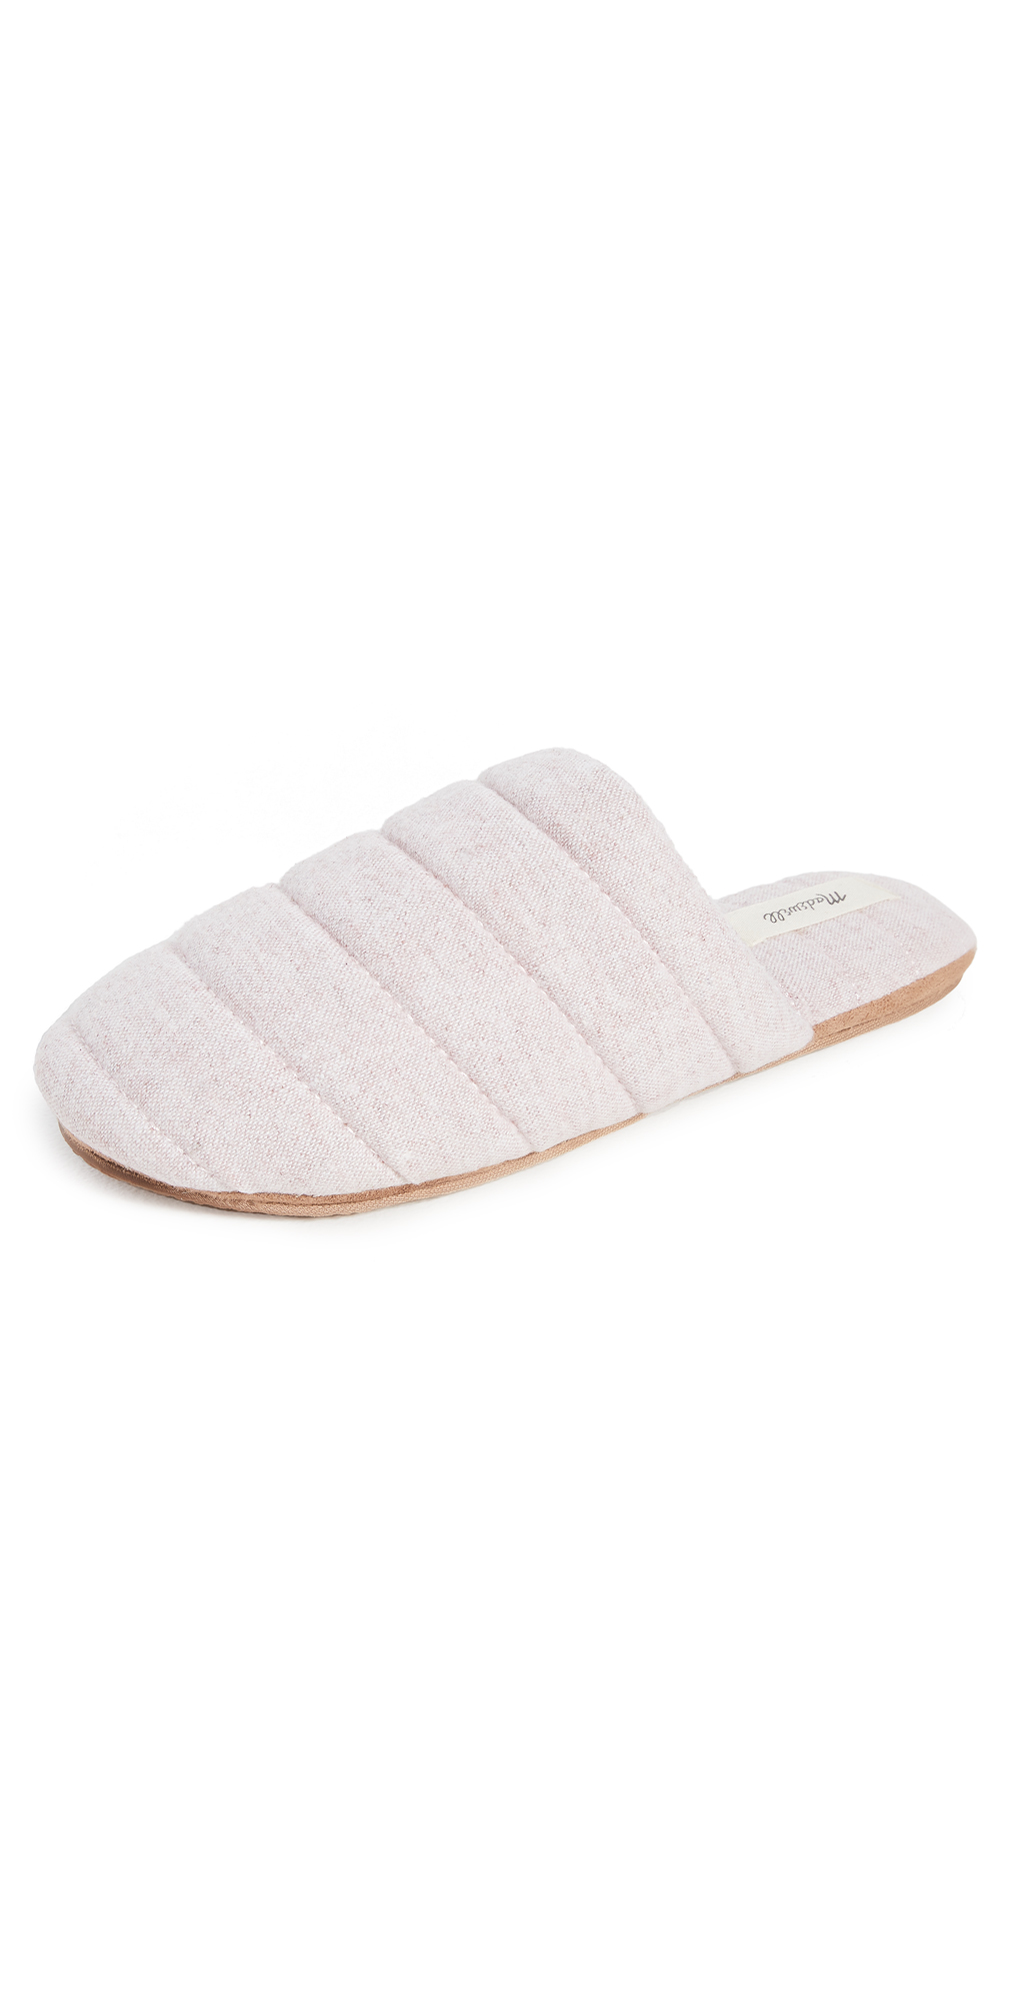 Madewell Slippers QUILTED PUFFY SLIPPERS